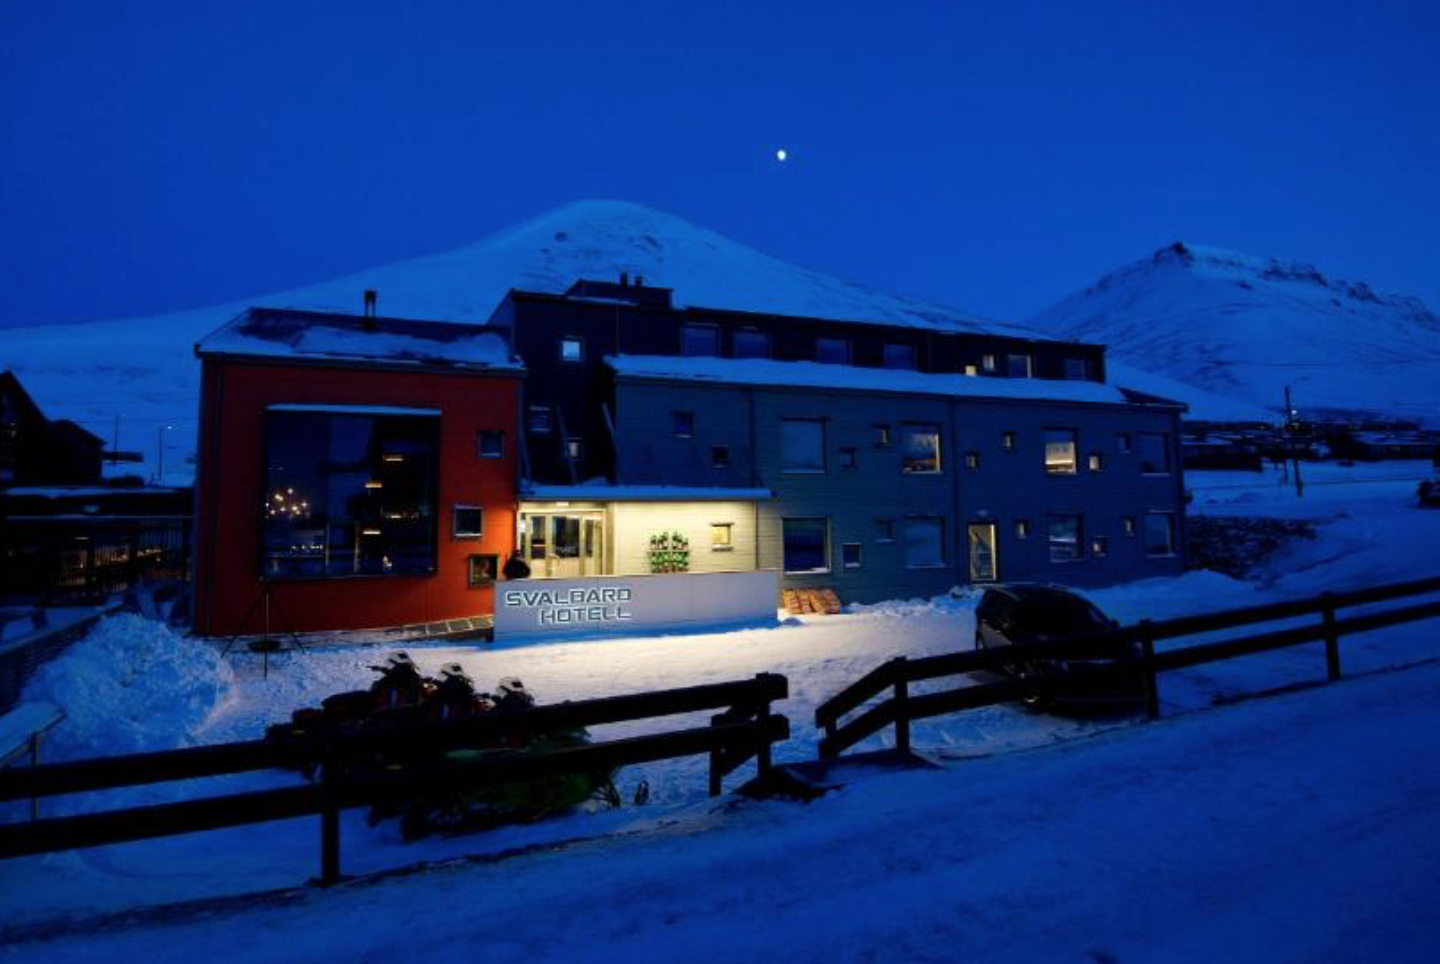 25M KR. IN COVID-19 TOURISM AID FOR SVALBARD: Norway's government OK's extra funds to help devastated industry